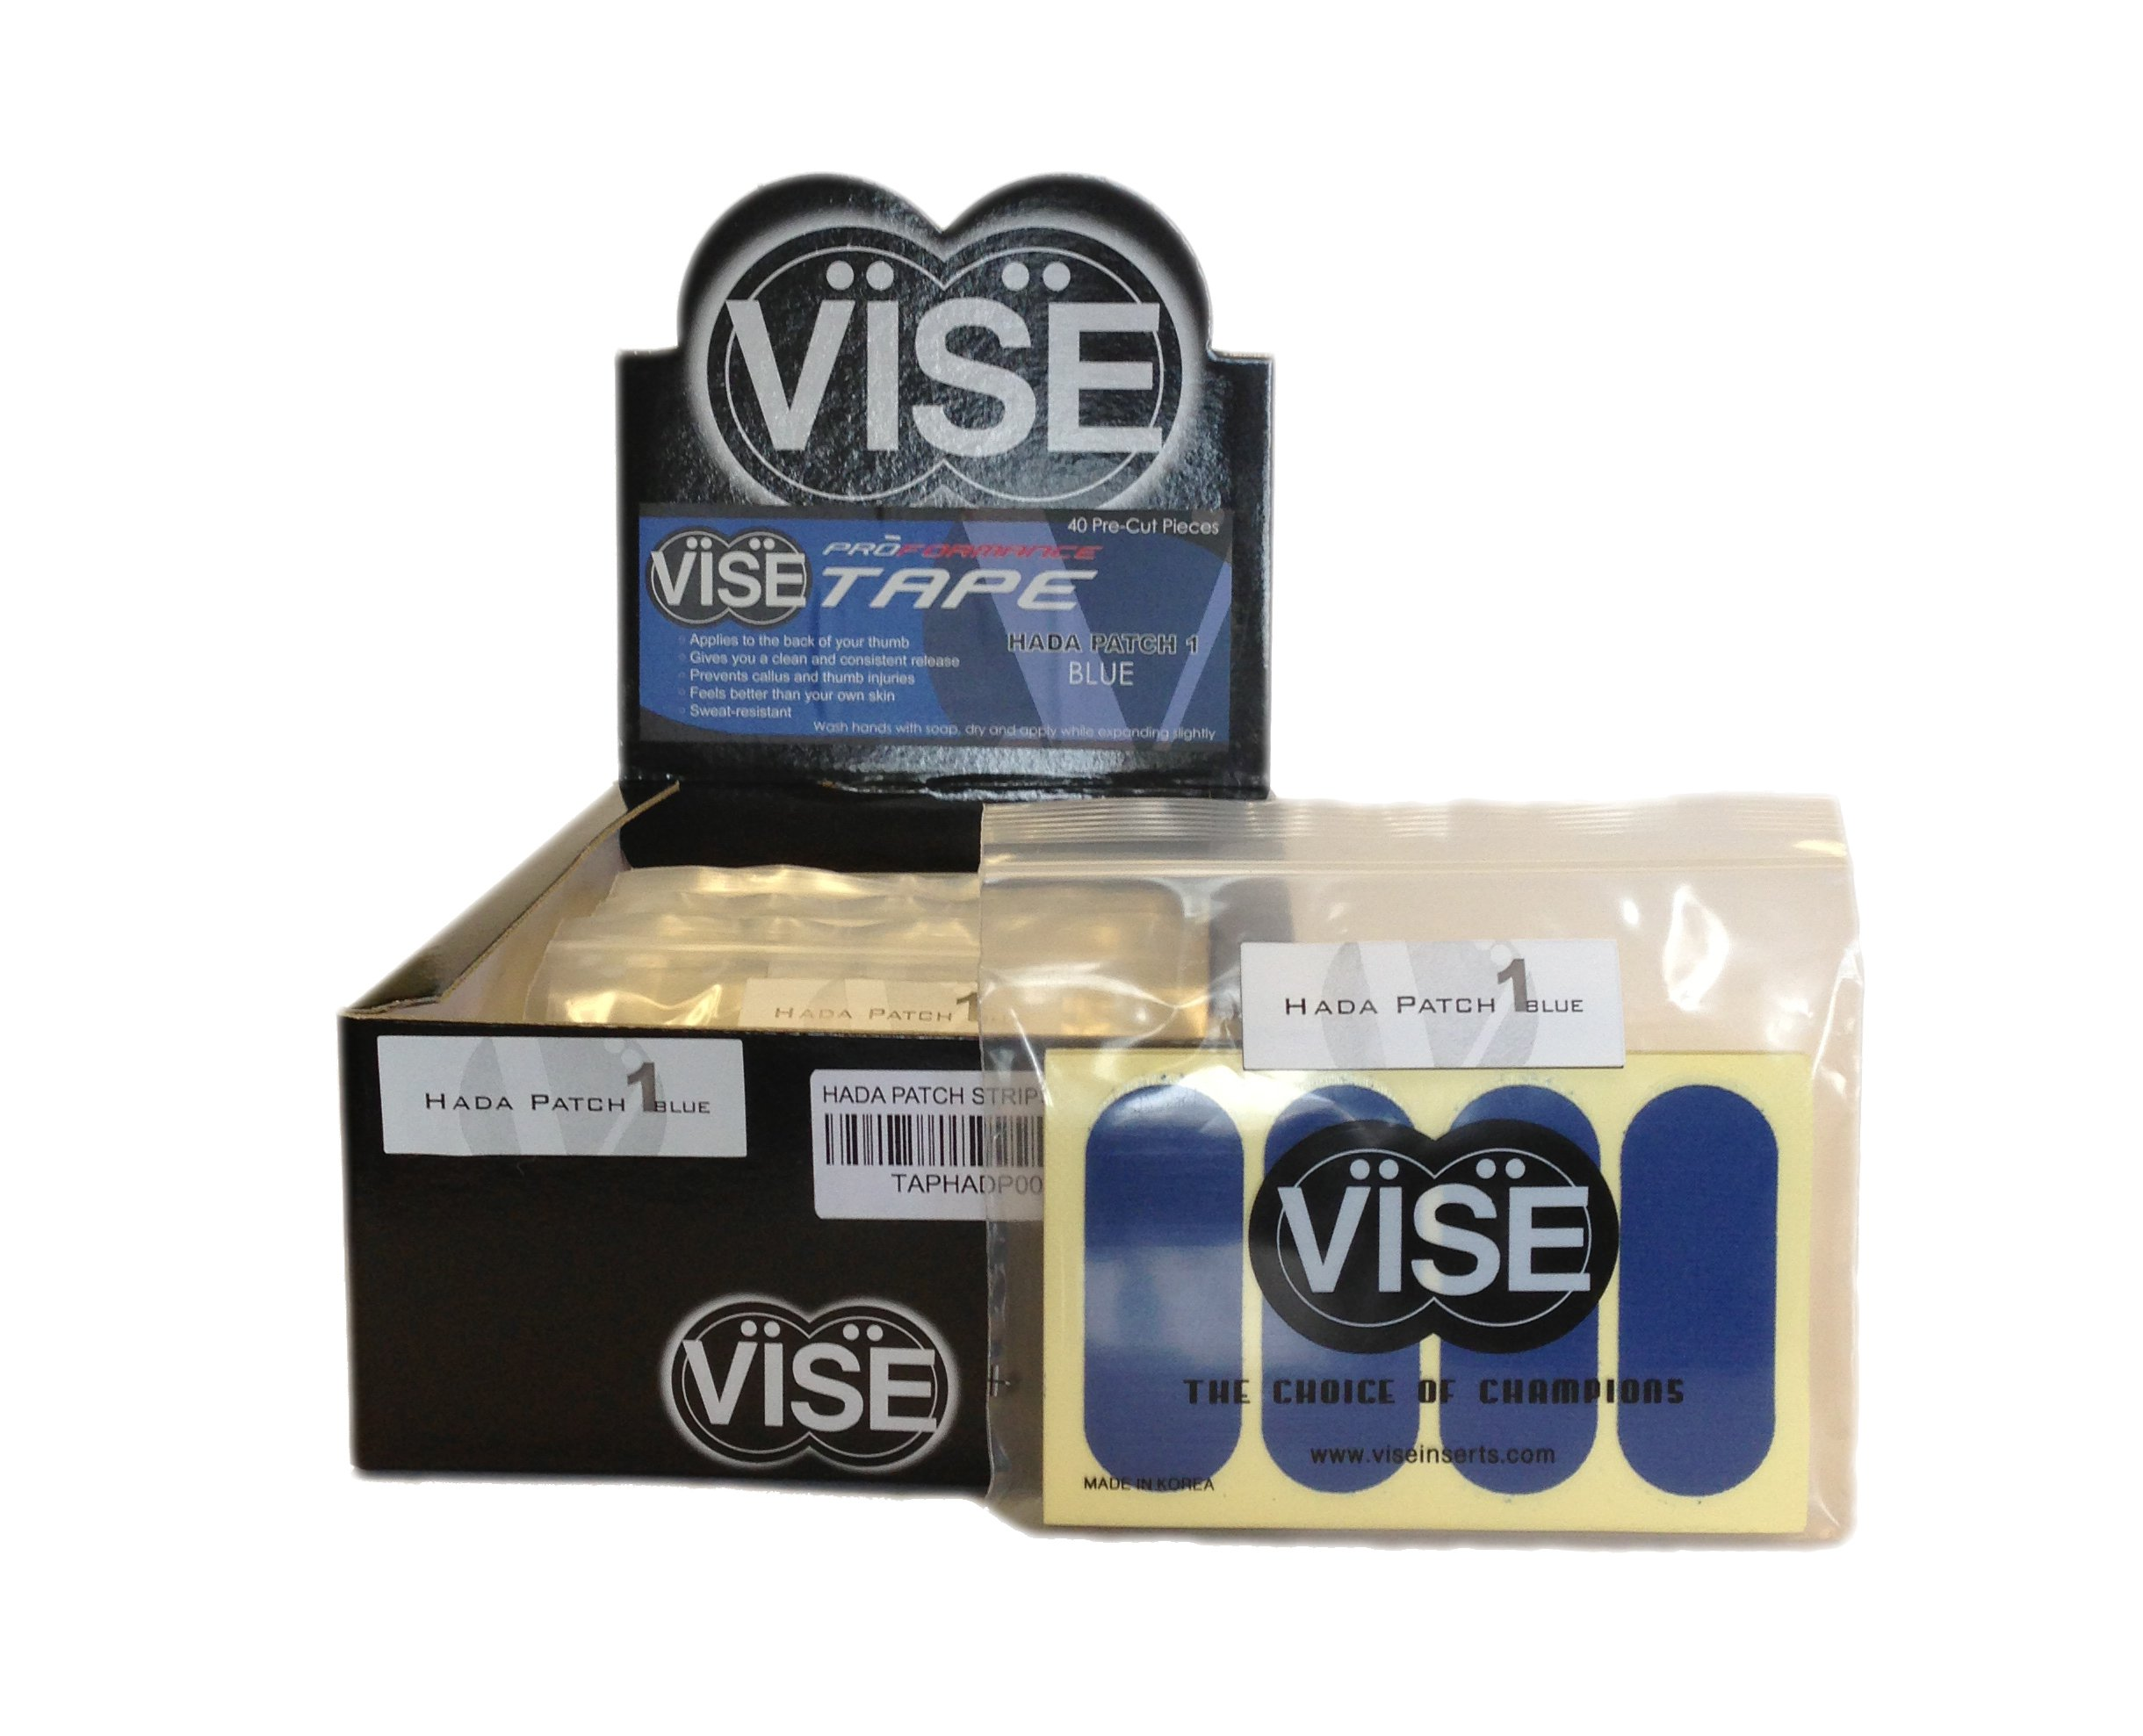 Vise Hada Patch Pre-Cut Tape (Pack of 12), Blue by Vise